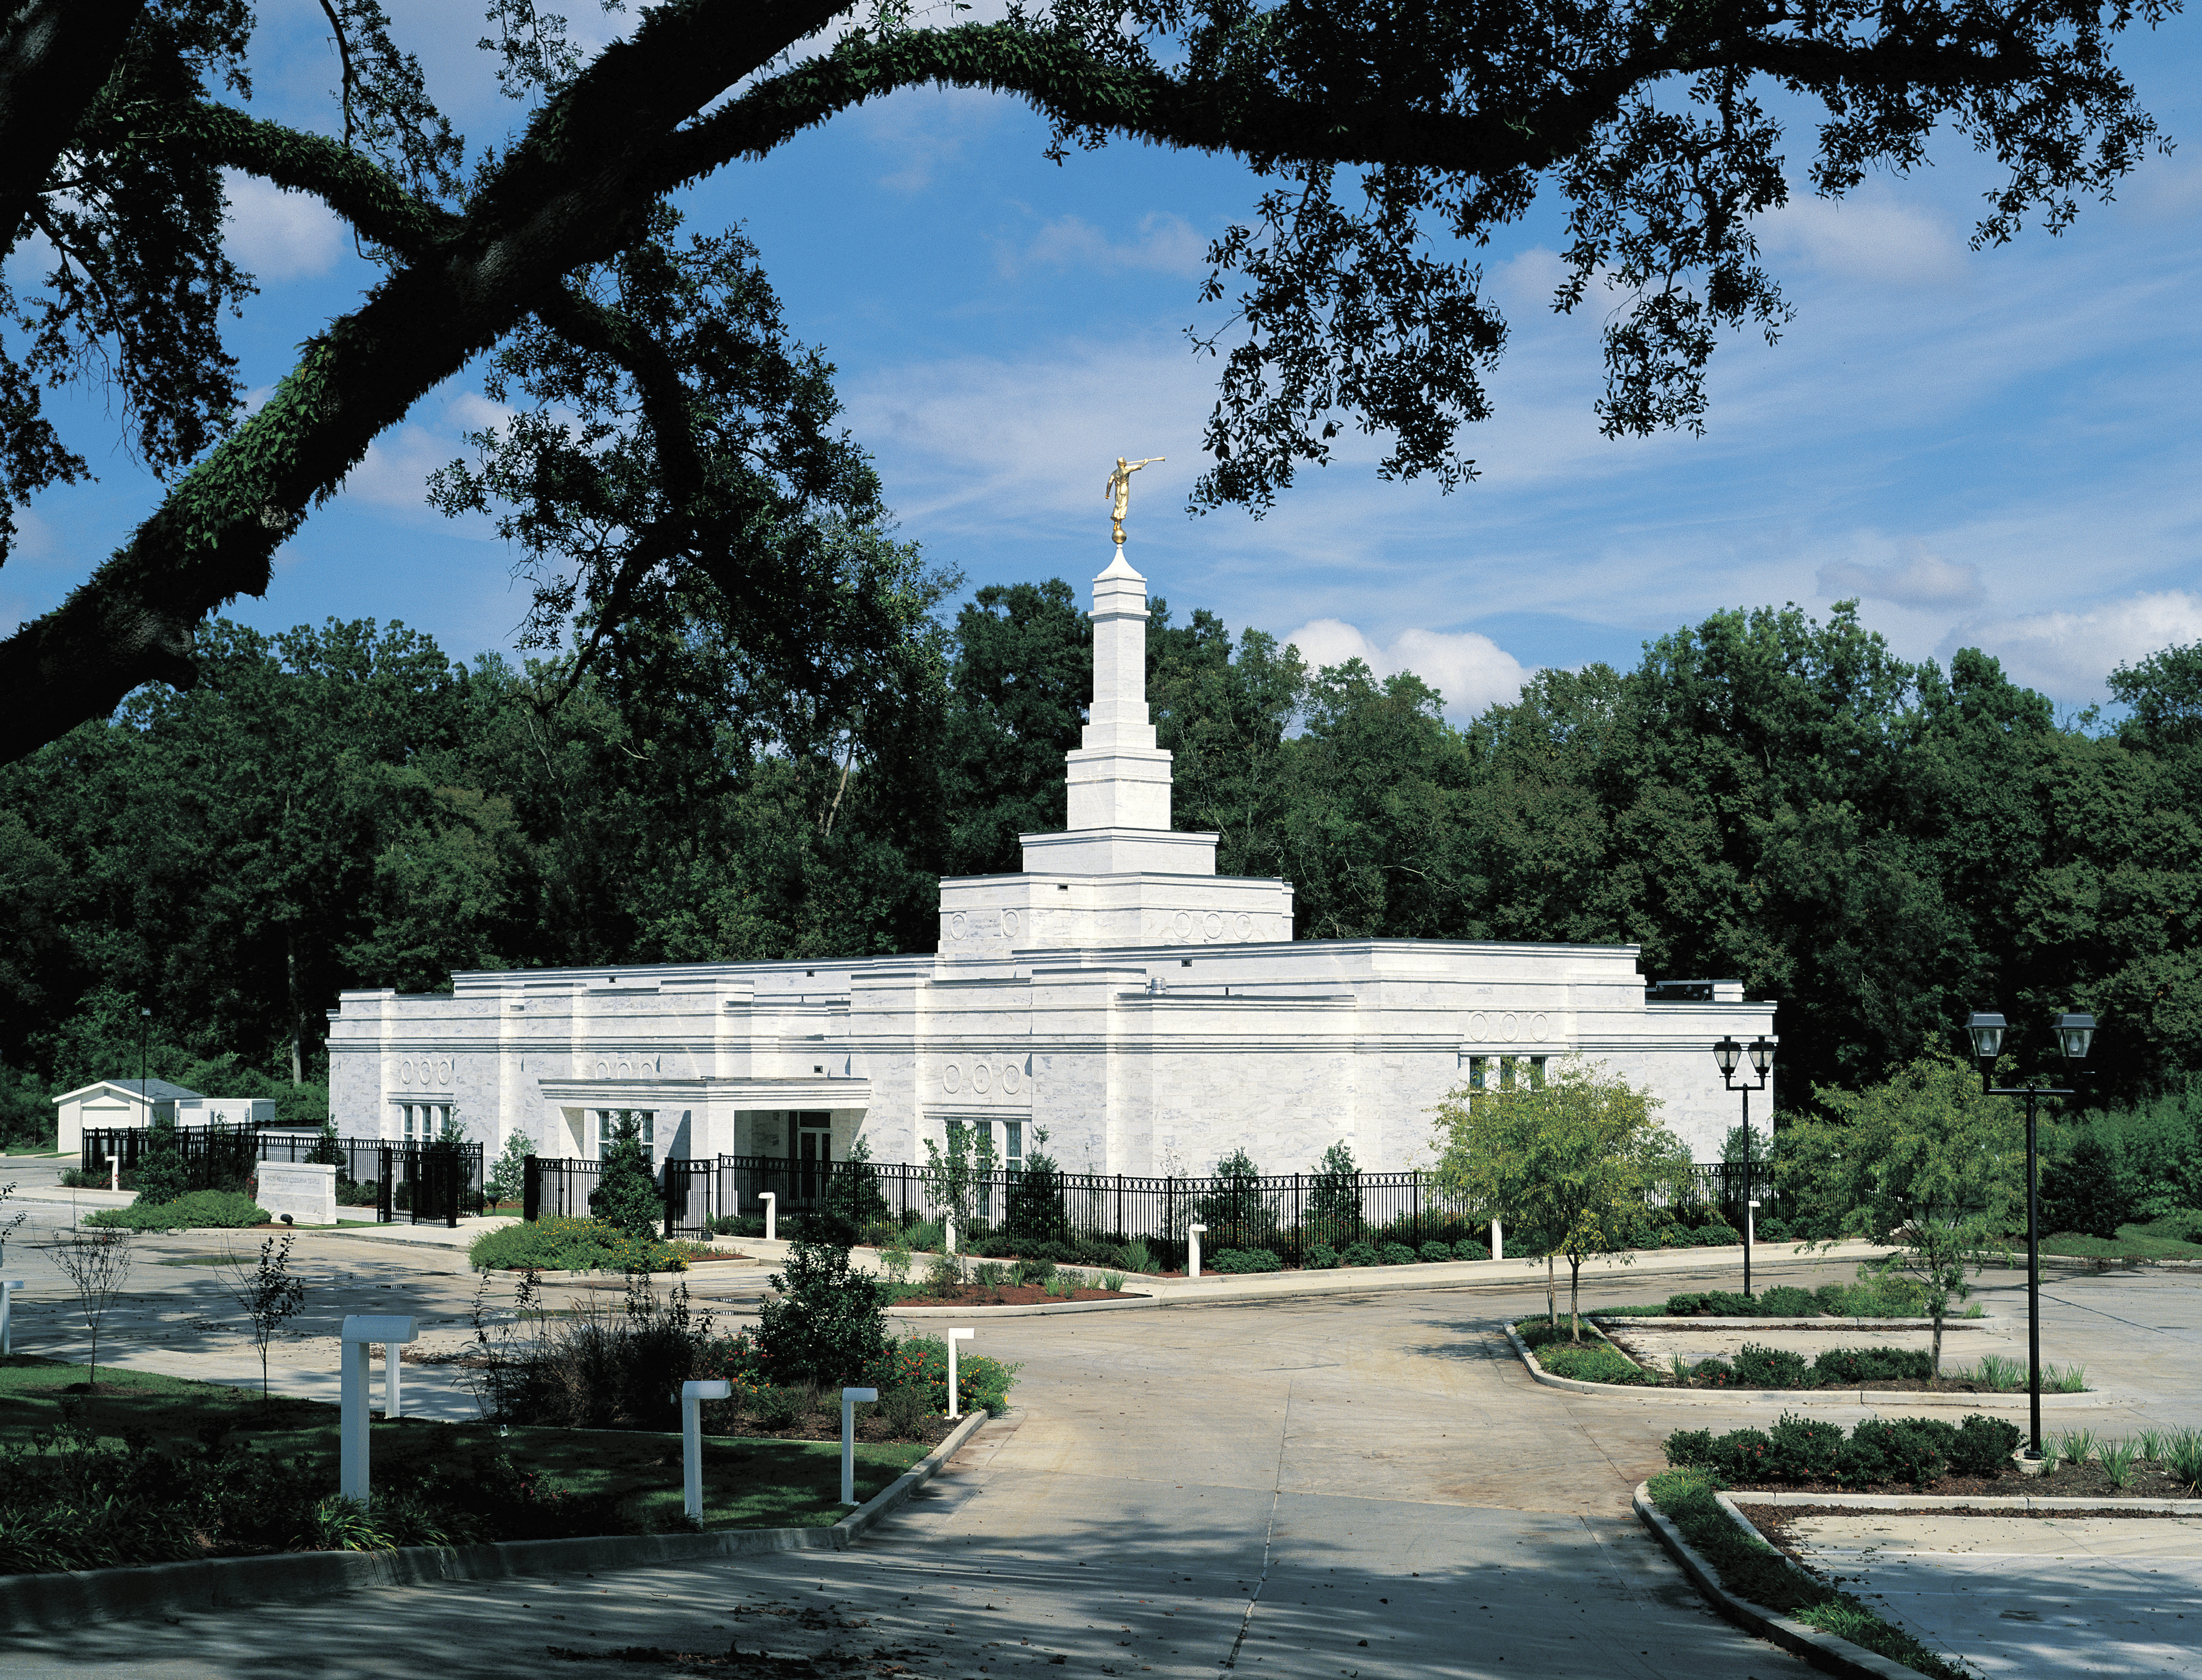 A side view of the Baton Rouge Louisiana Temple on a sunny day.